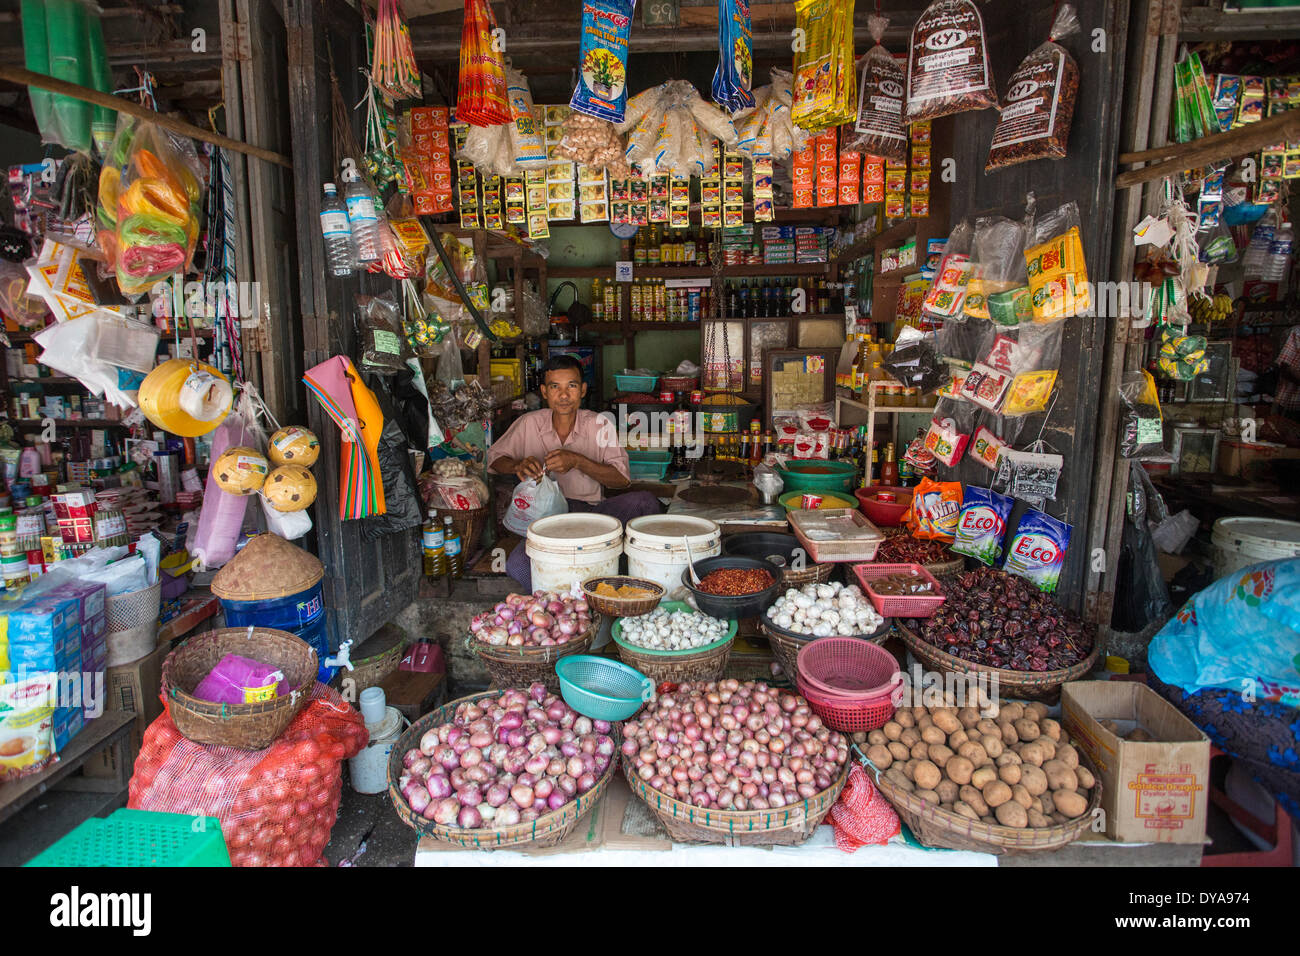 Le Myanmar, Birmanie, Asie, magasin, Yangon City, colorée, pratique, marché, ouvert, touristique, shop, traditionnel Photo Stock